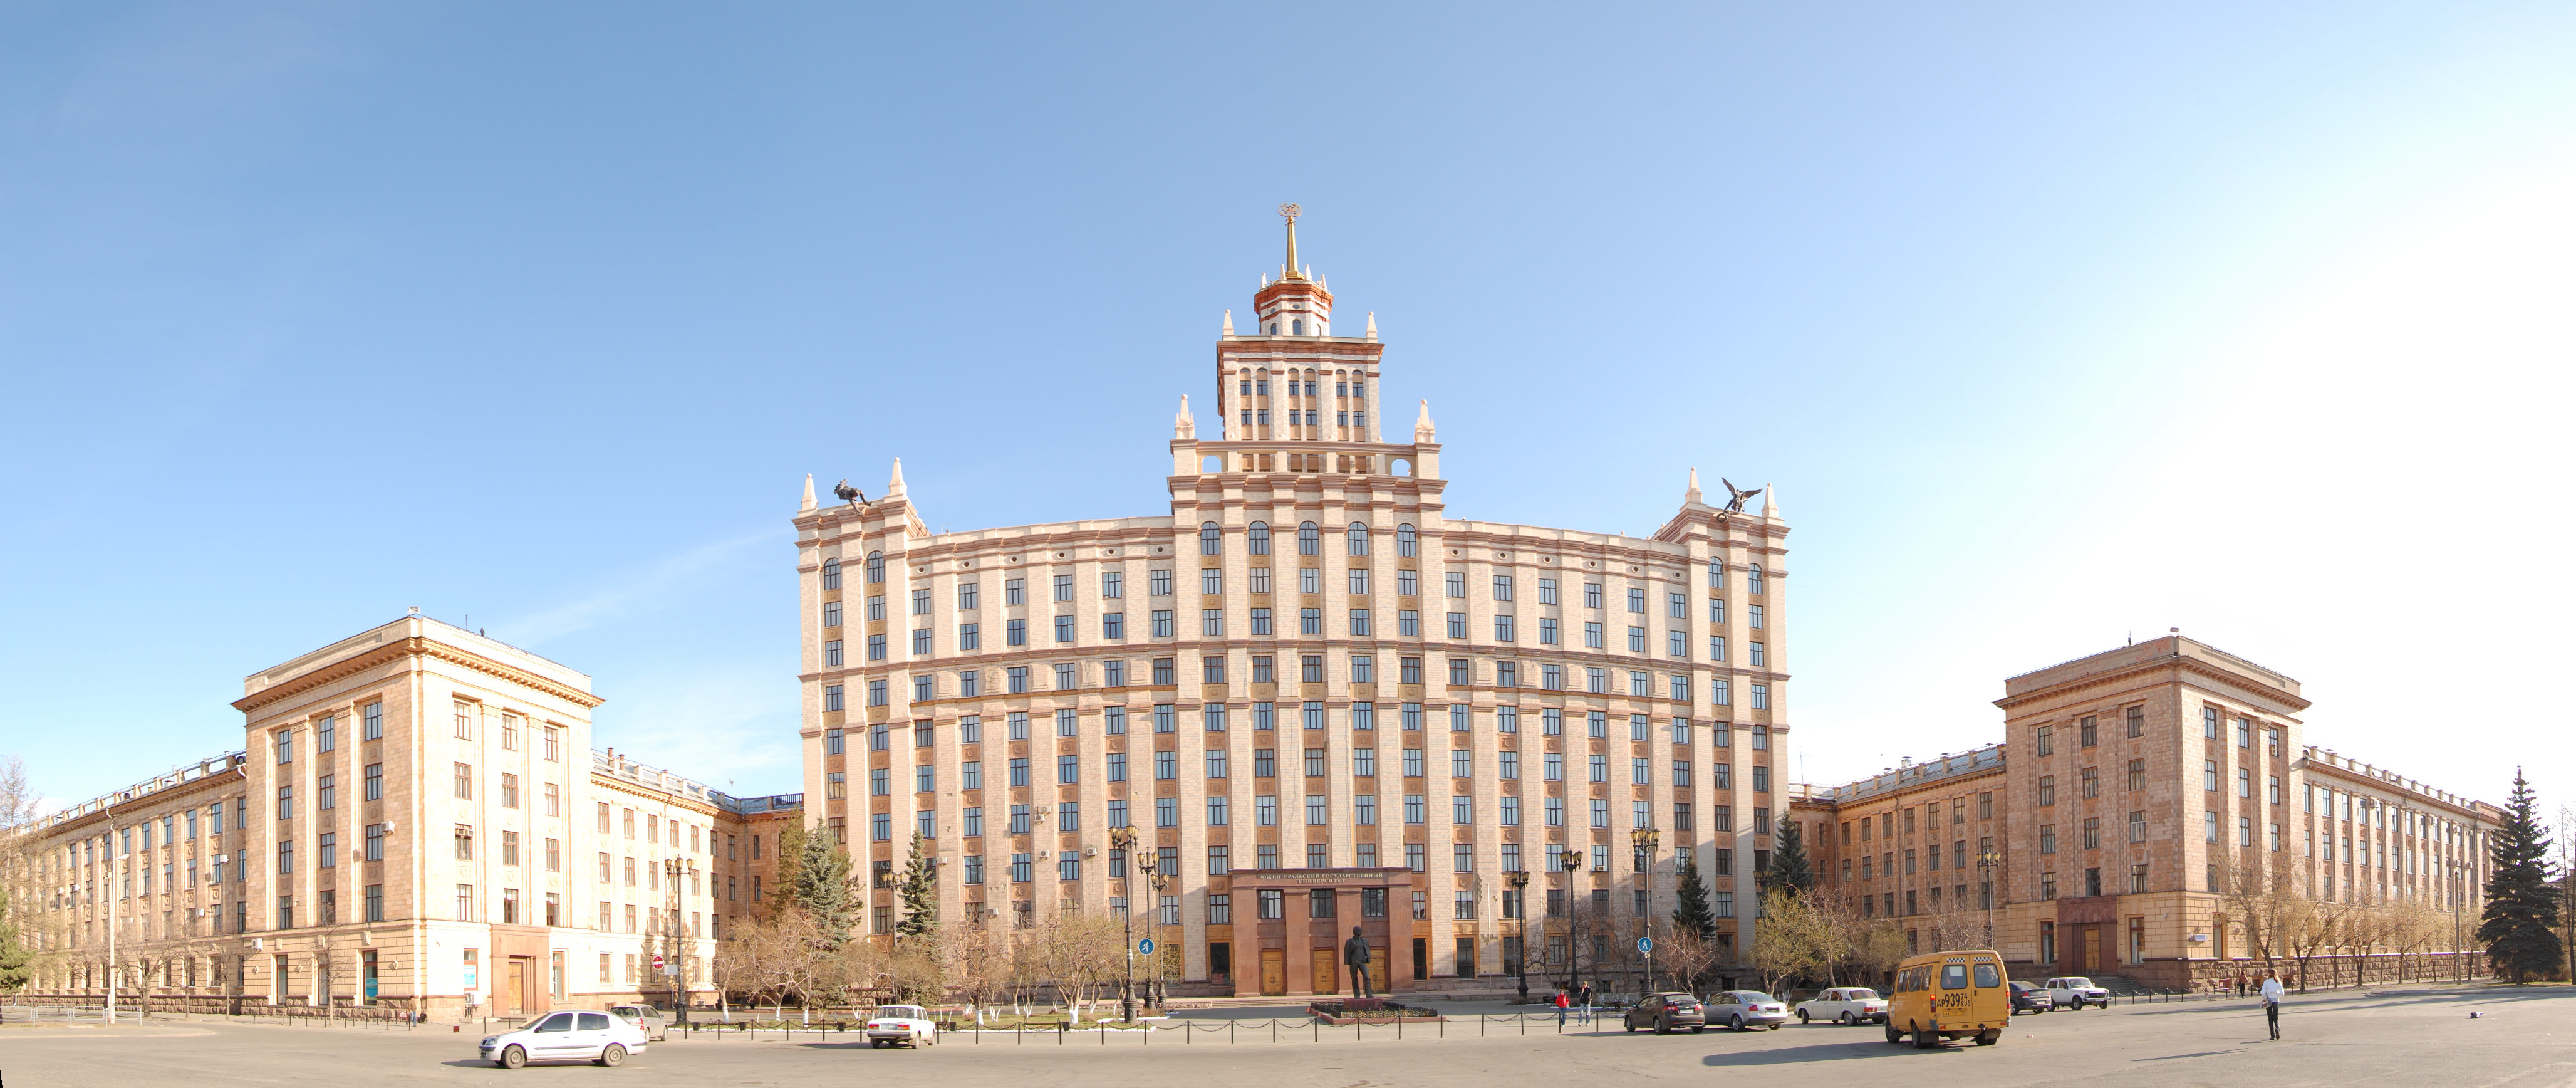 South Ural State University in Chelyabinsk, Russia.